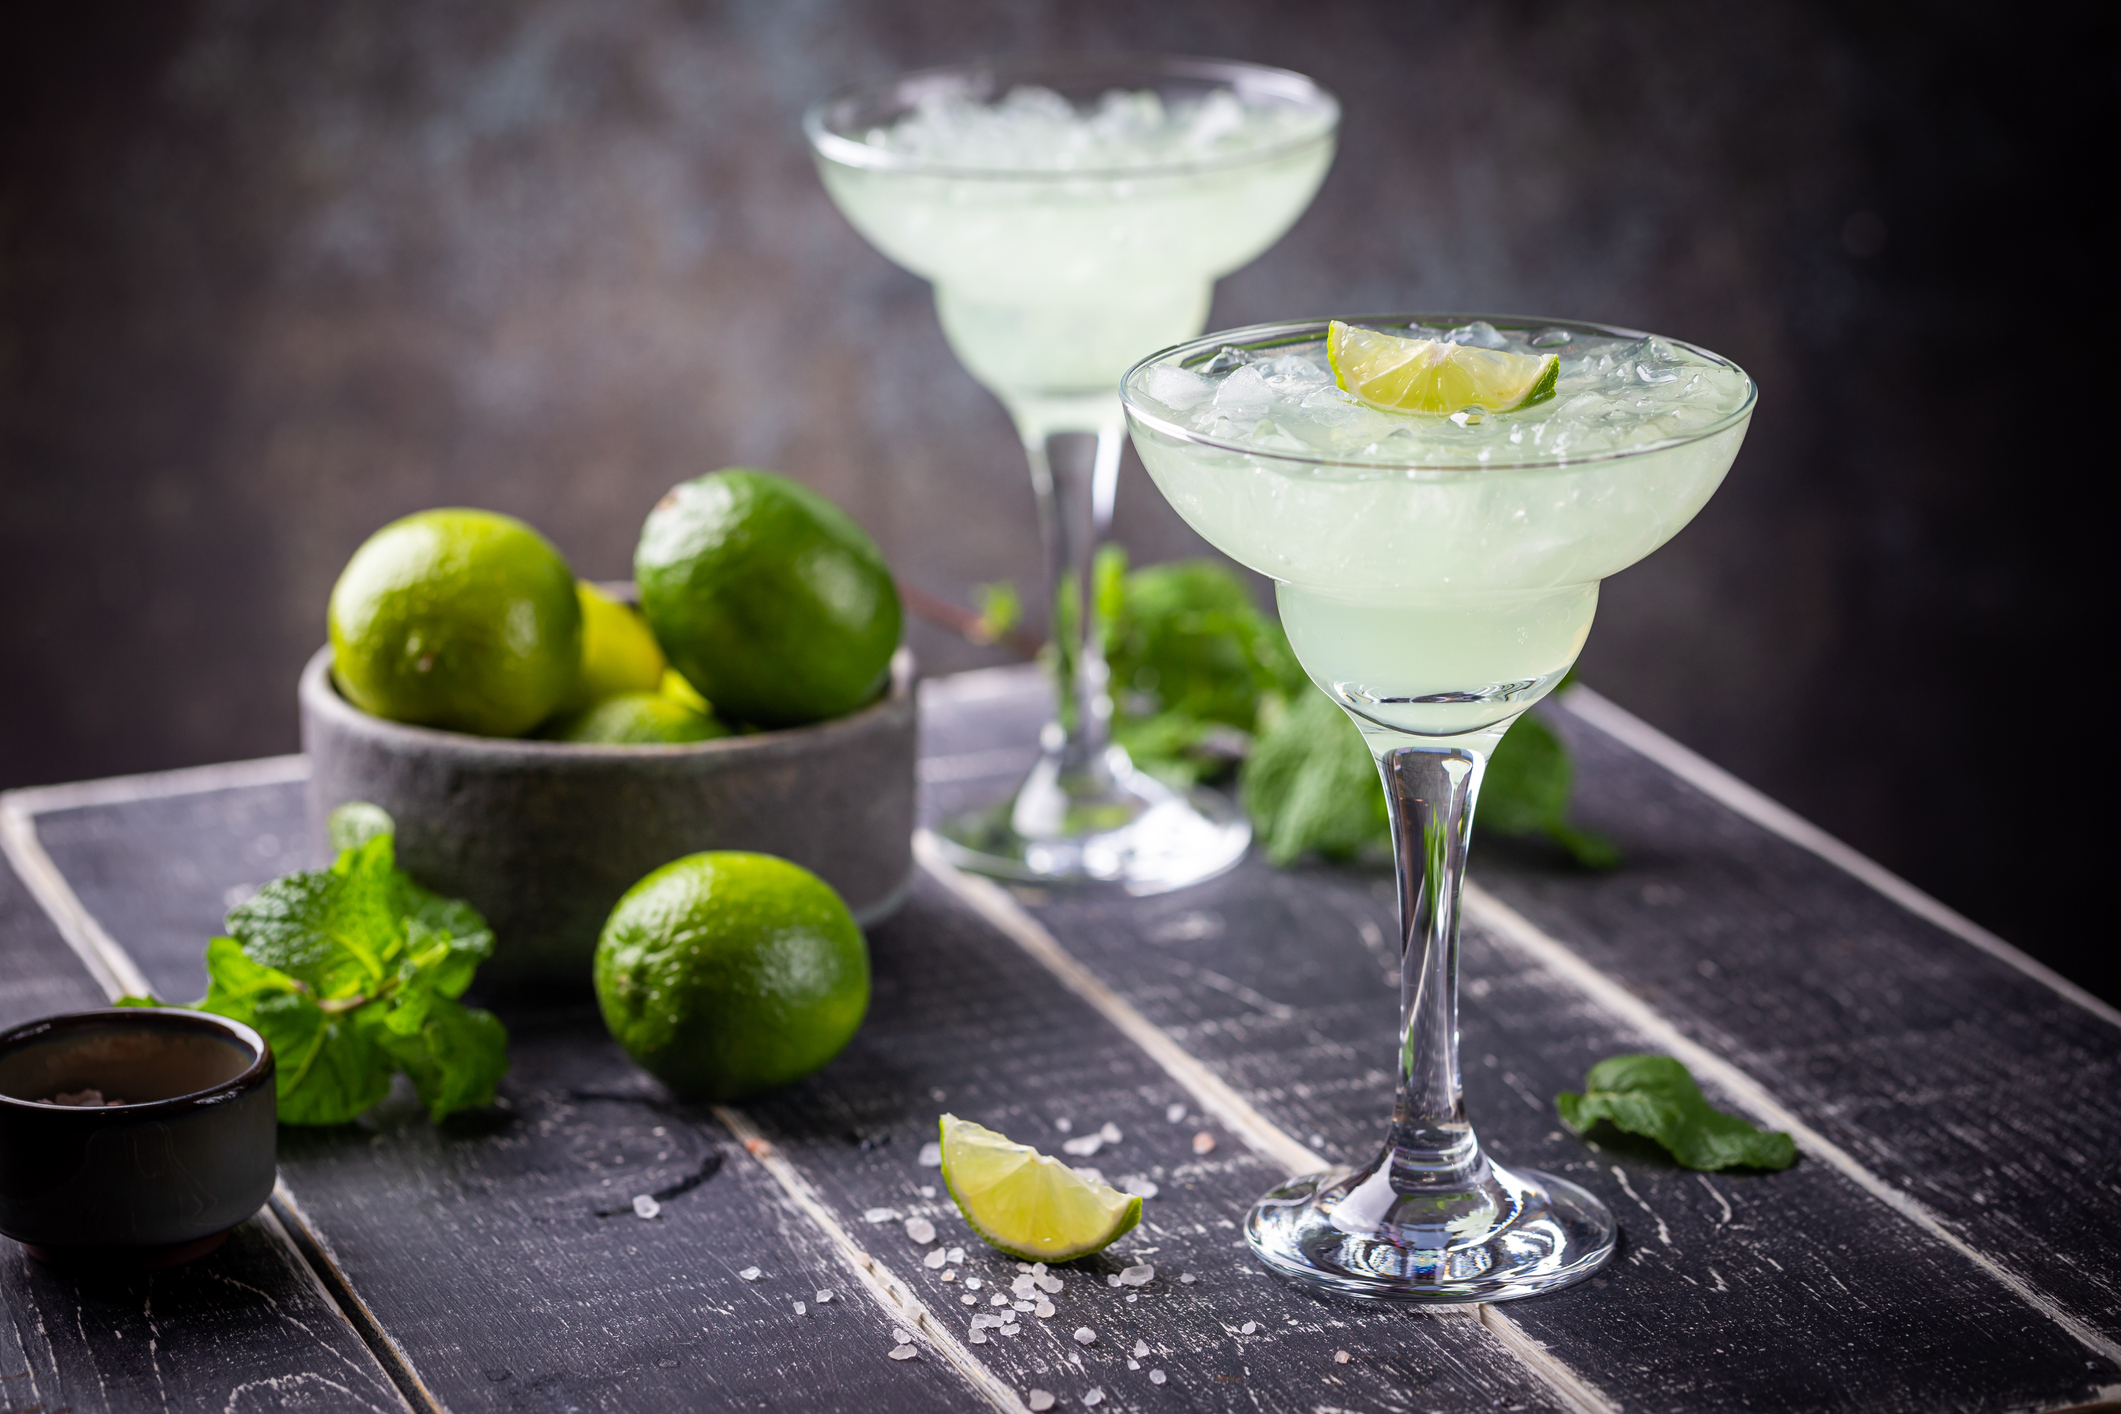 Chef Plum From The Food Network Teaches You How To Make The Perfect Margarita!